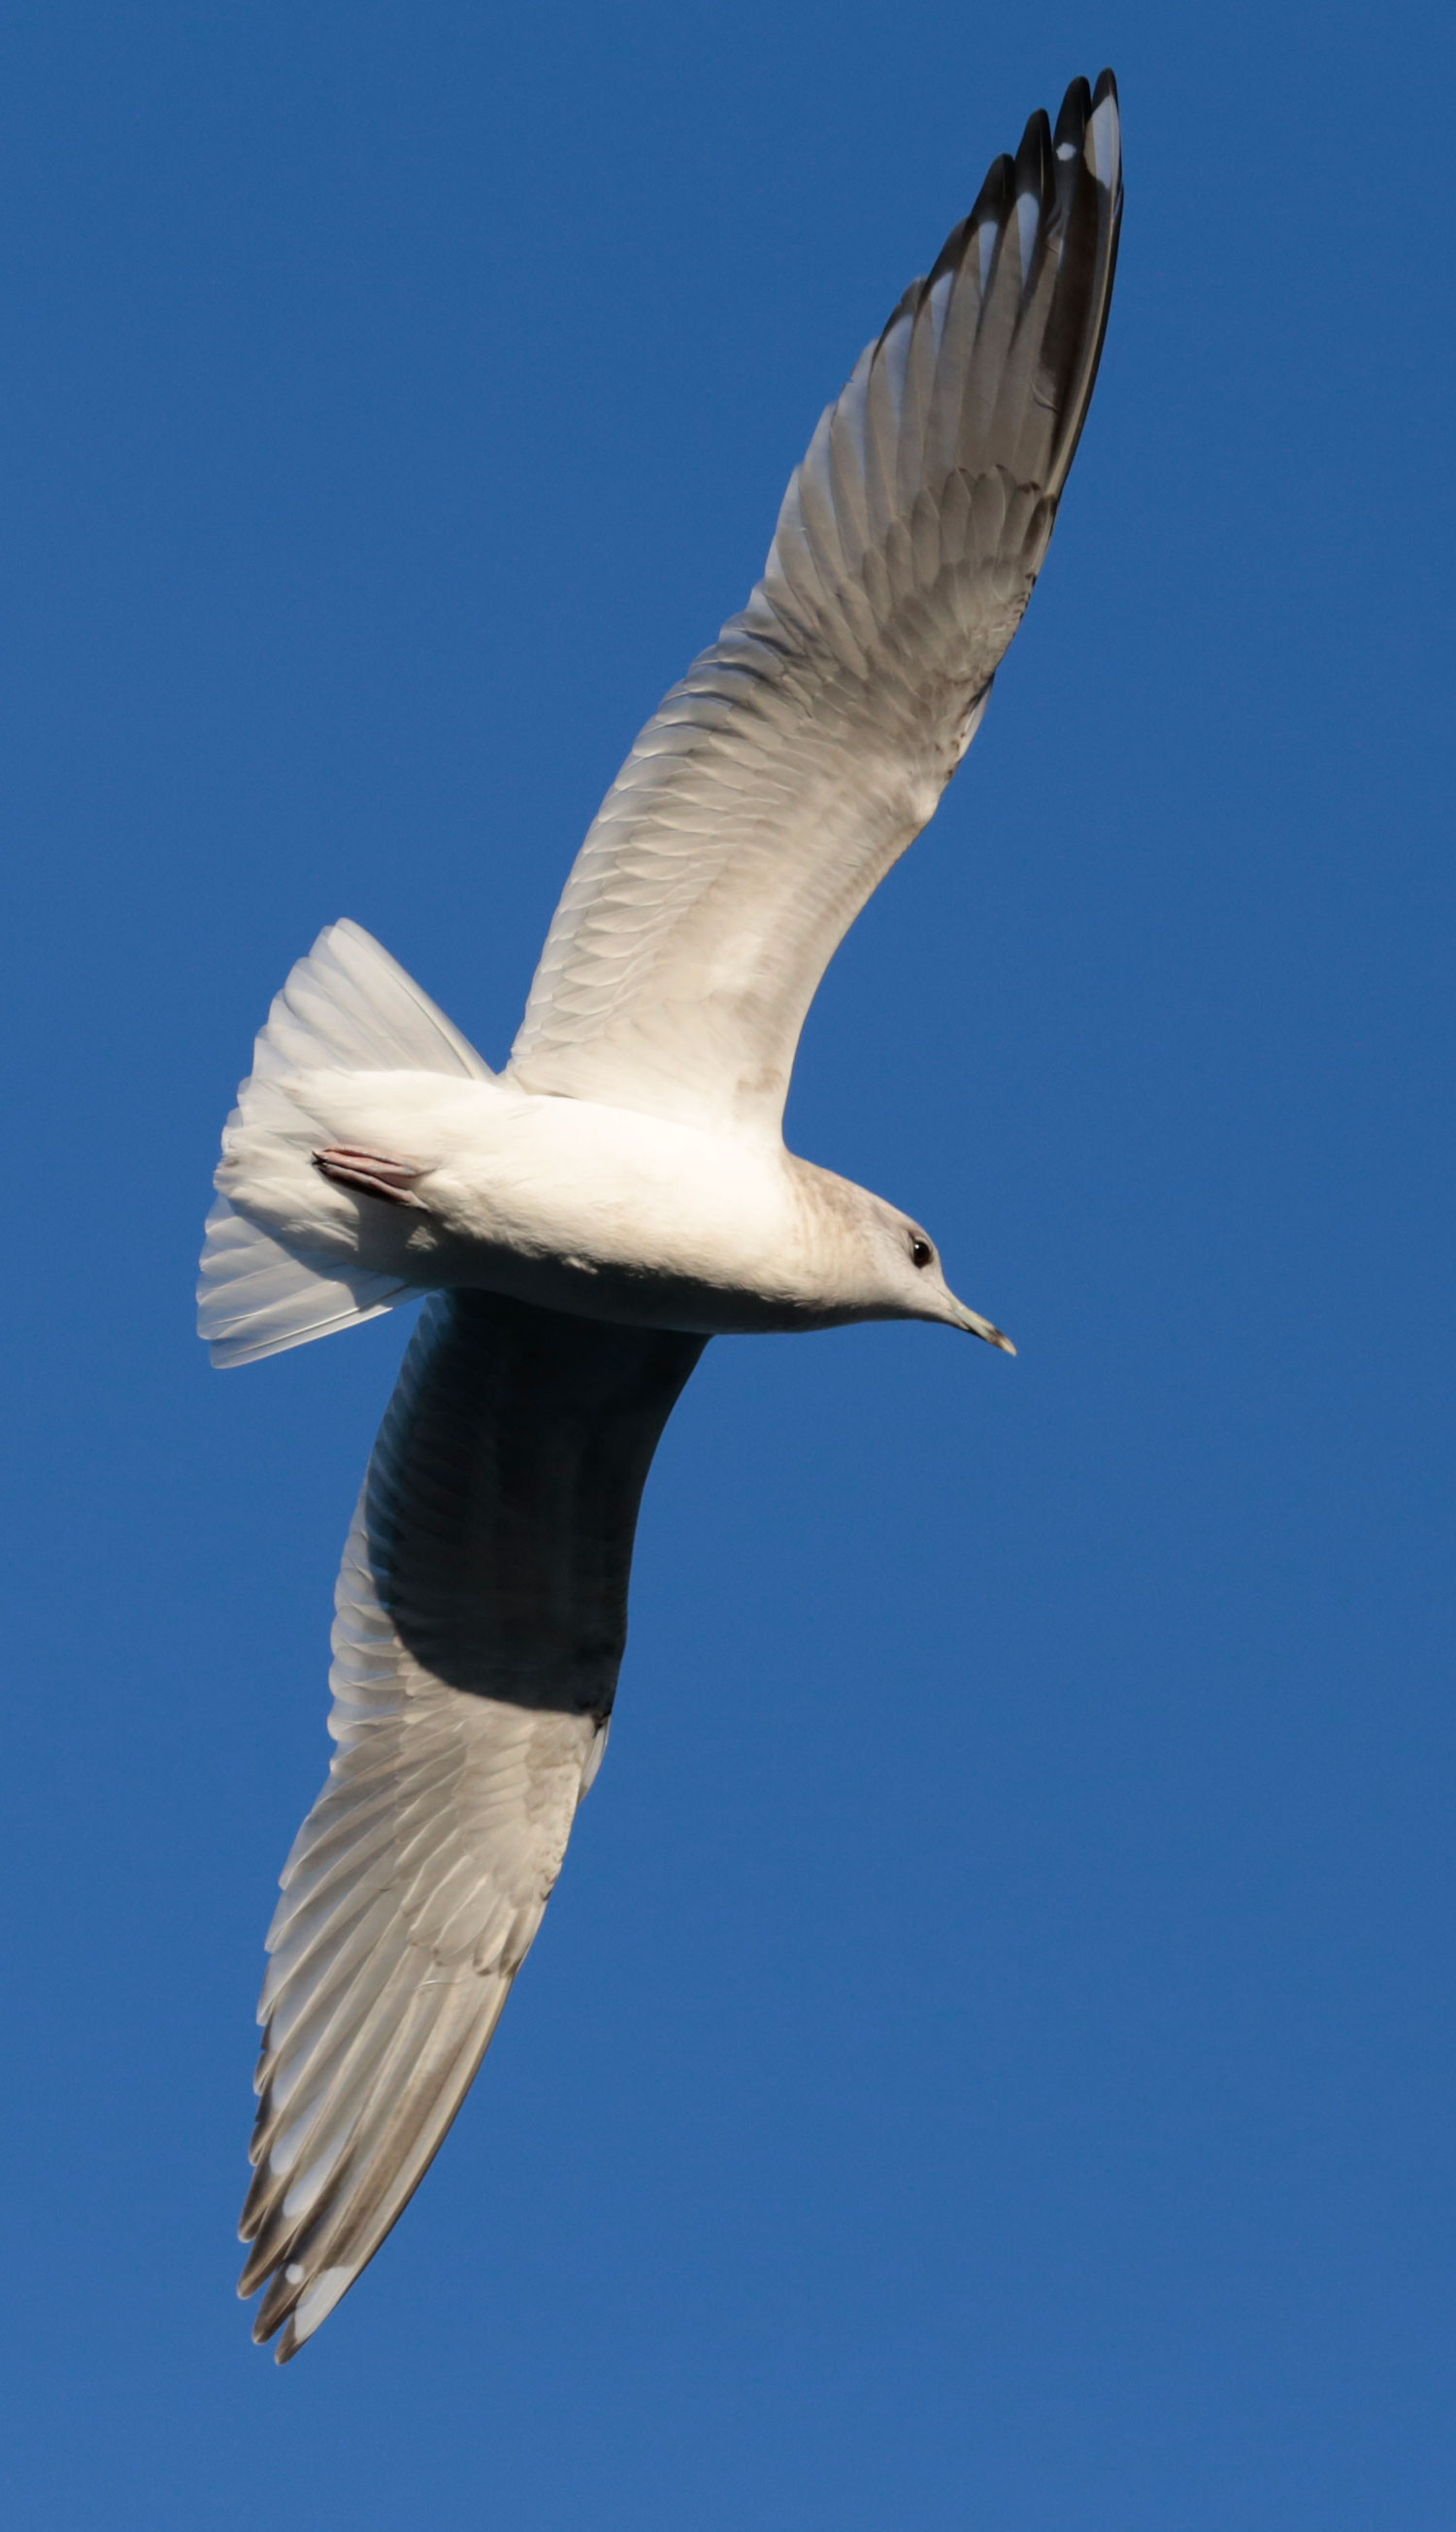 Graceful seagull soaring